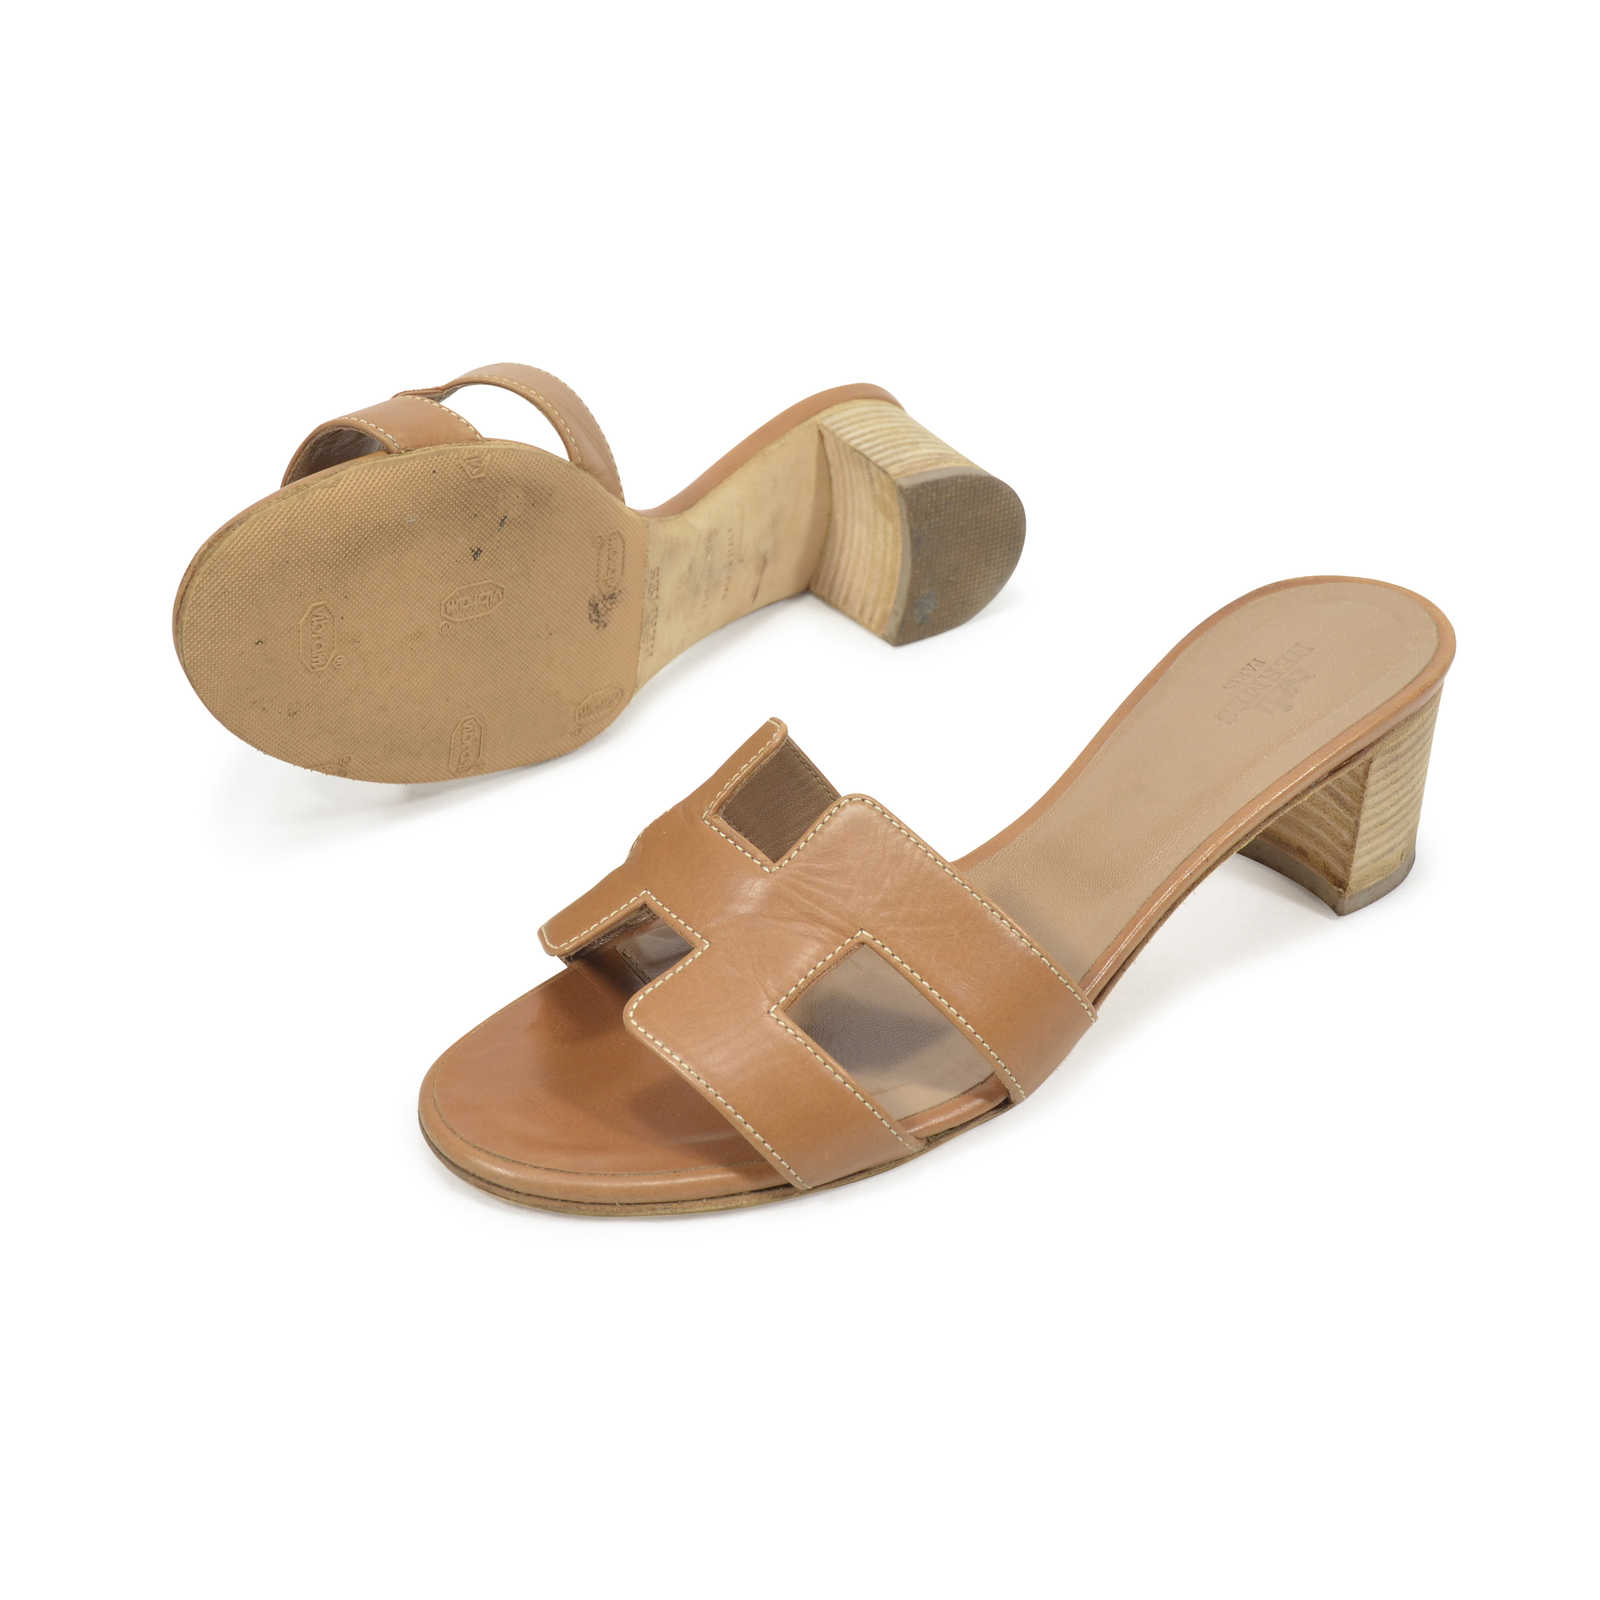 1378ad6f7db6 ... Authentic Second Hand Hermès Oasis Sandals (PSS-311-00019) - Thumbnail  1 ...